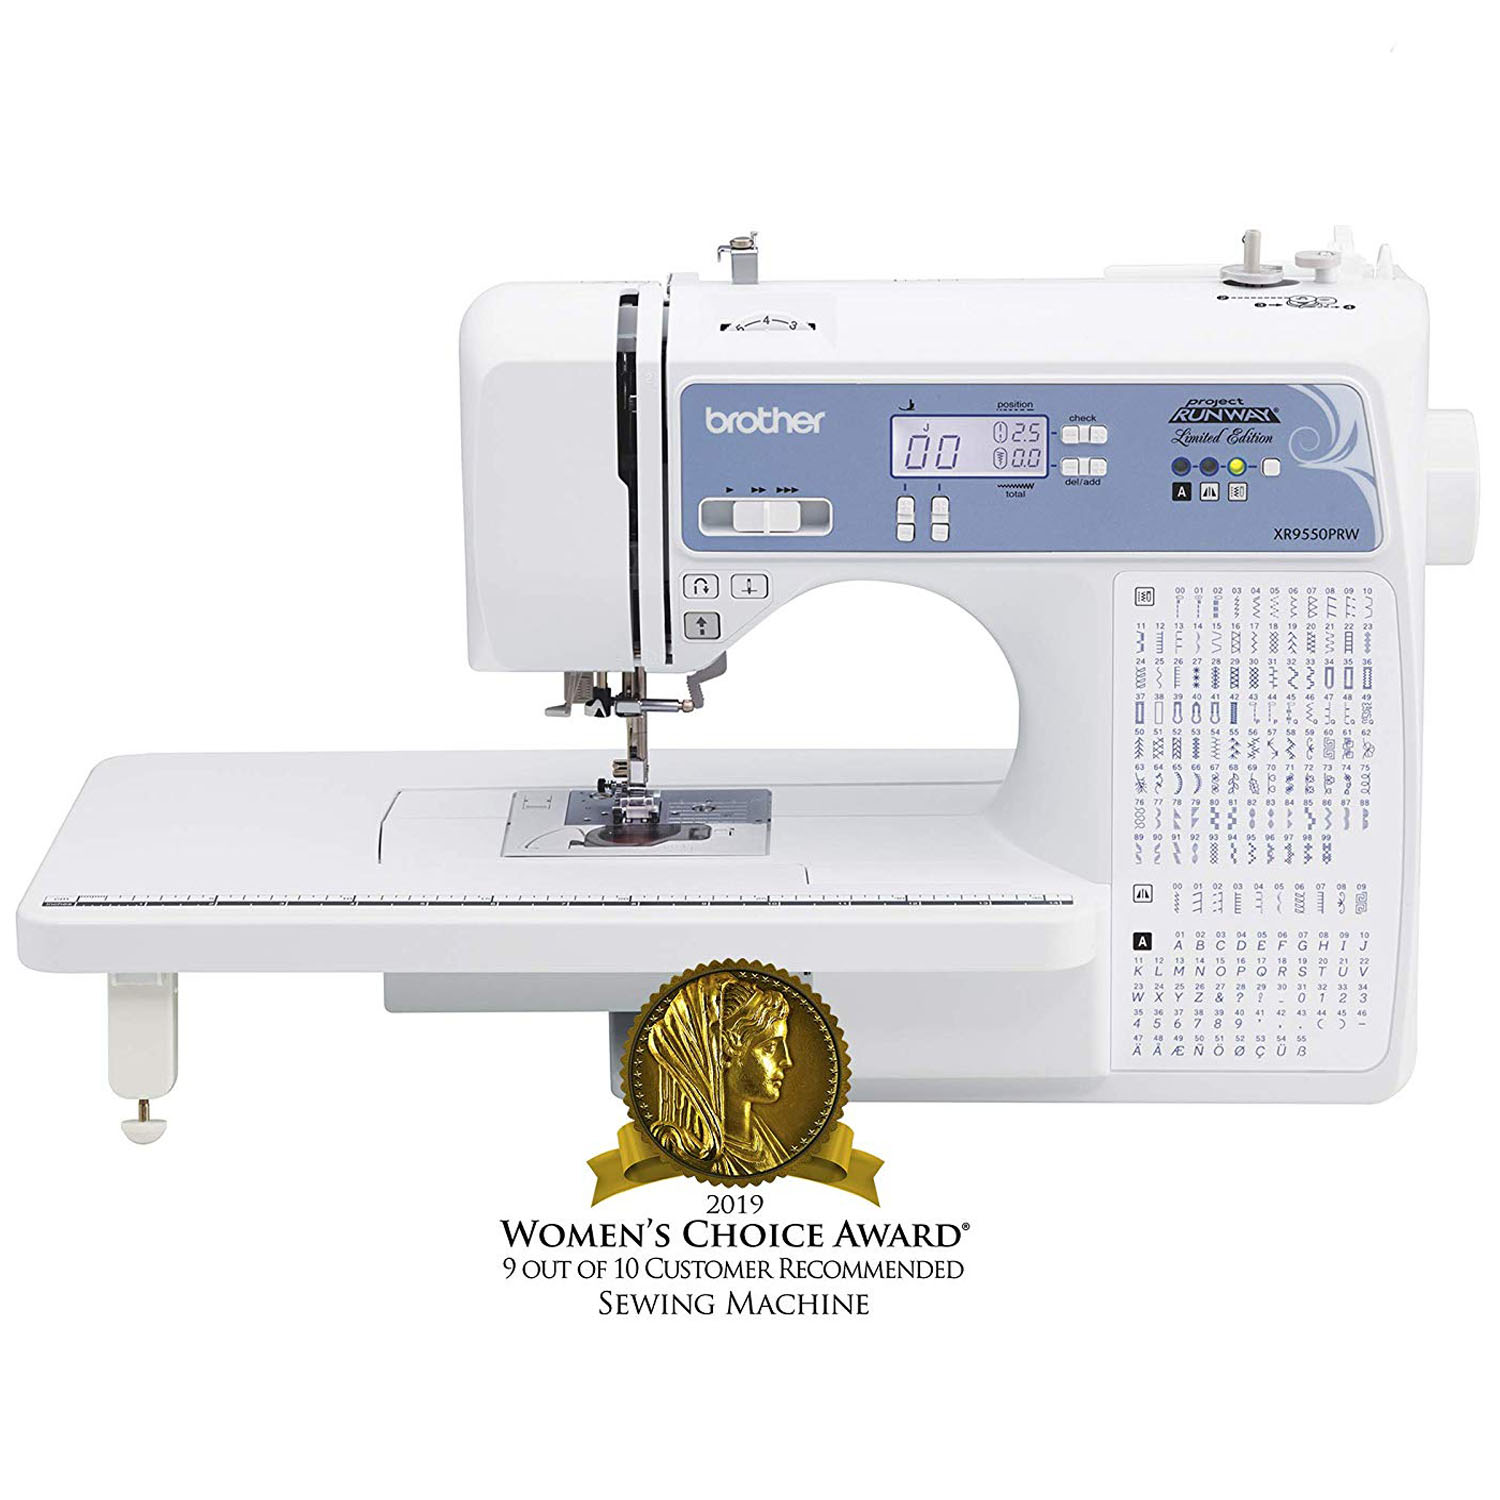 Brother XR9550PRW Project Runway Sewing Machine